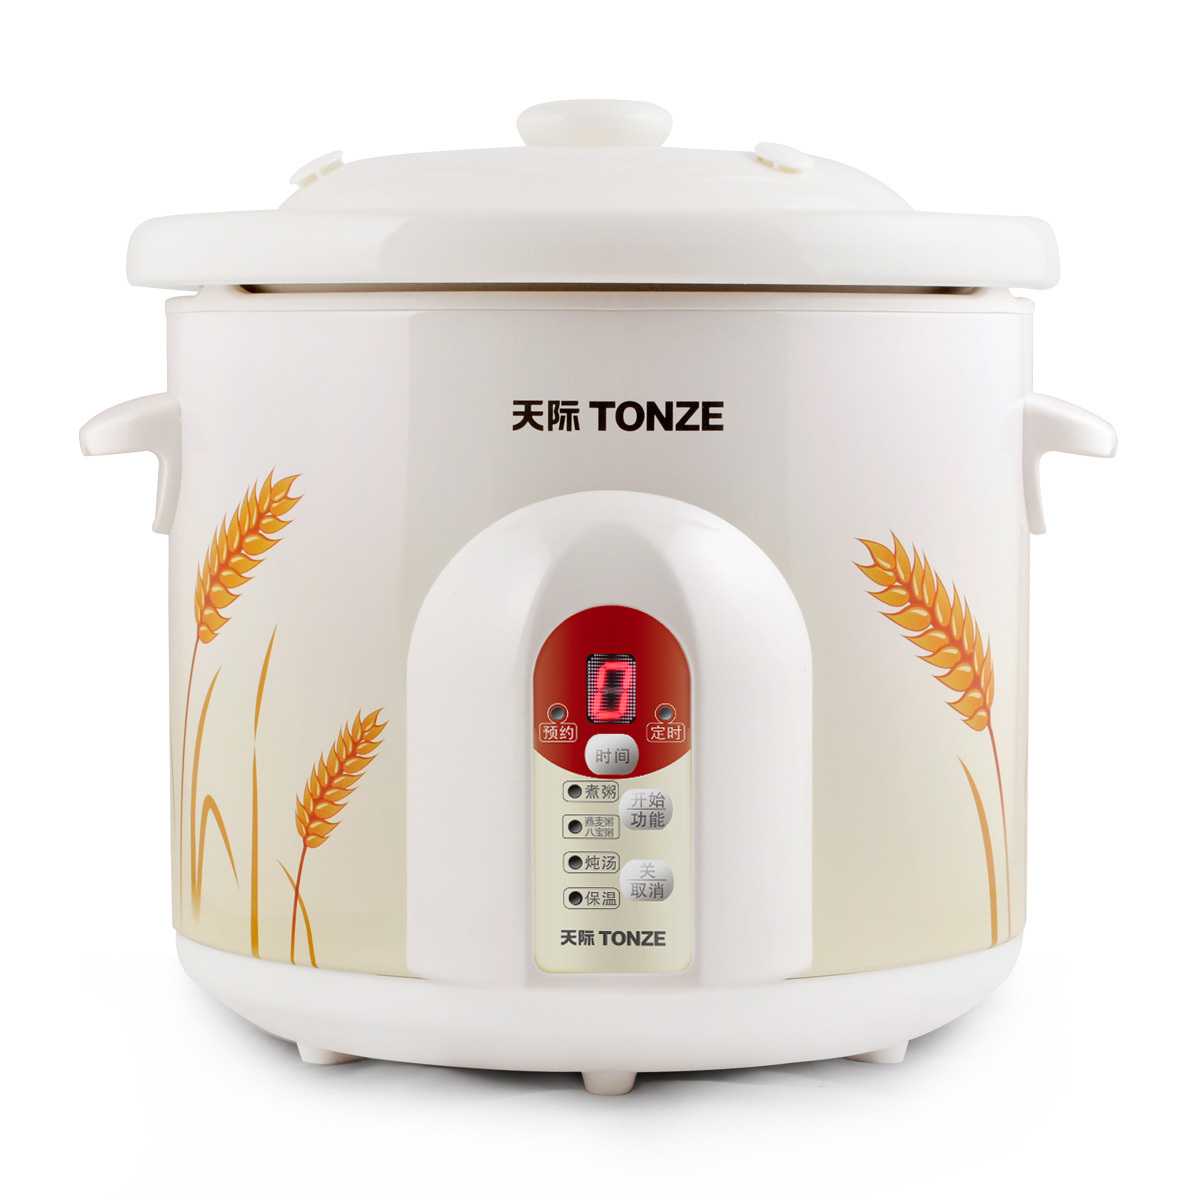 Tonze/skyline zzg-w520t timer reservation intelligent ceramic electric cooker porridge pot electric cooker porridge oats special price